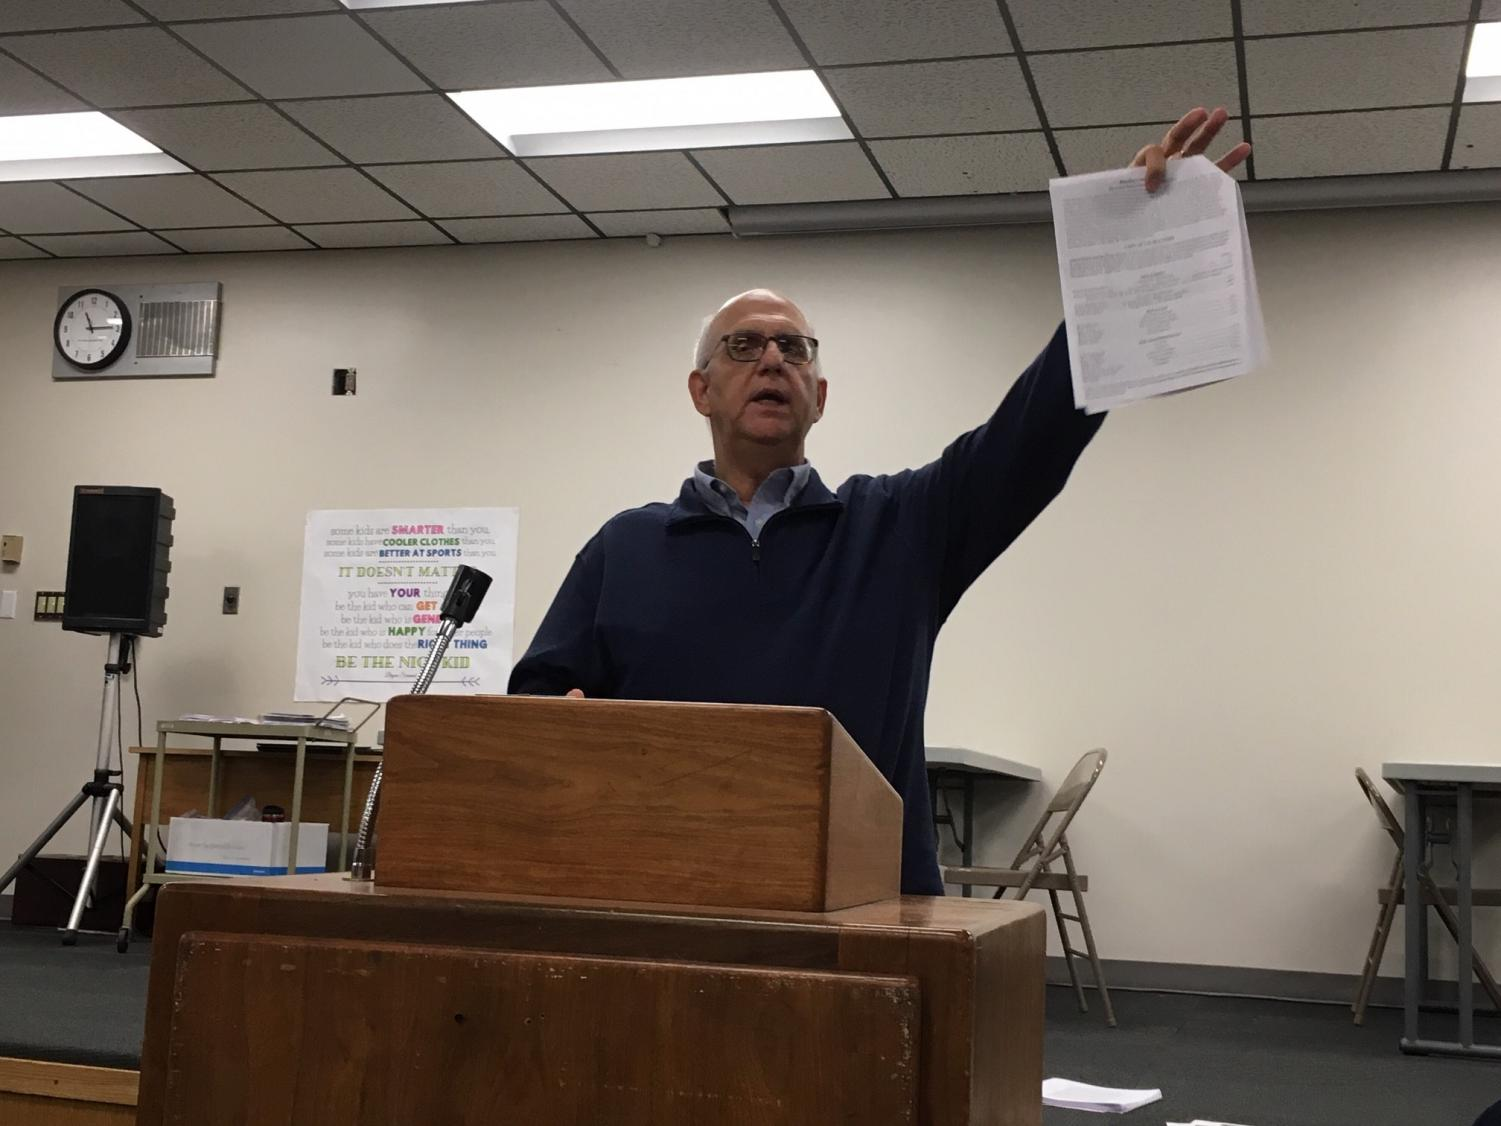 Director Bill Gasper holds up the informational packet that was passed out during the meeting. The packet contains information about auditions as well as the participation agreement that must be turned in to the office by Dec. 4.